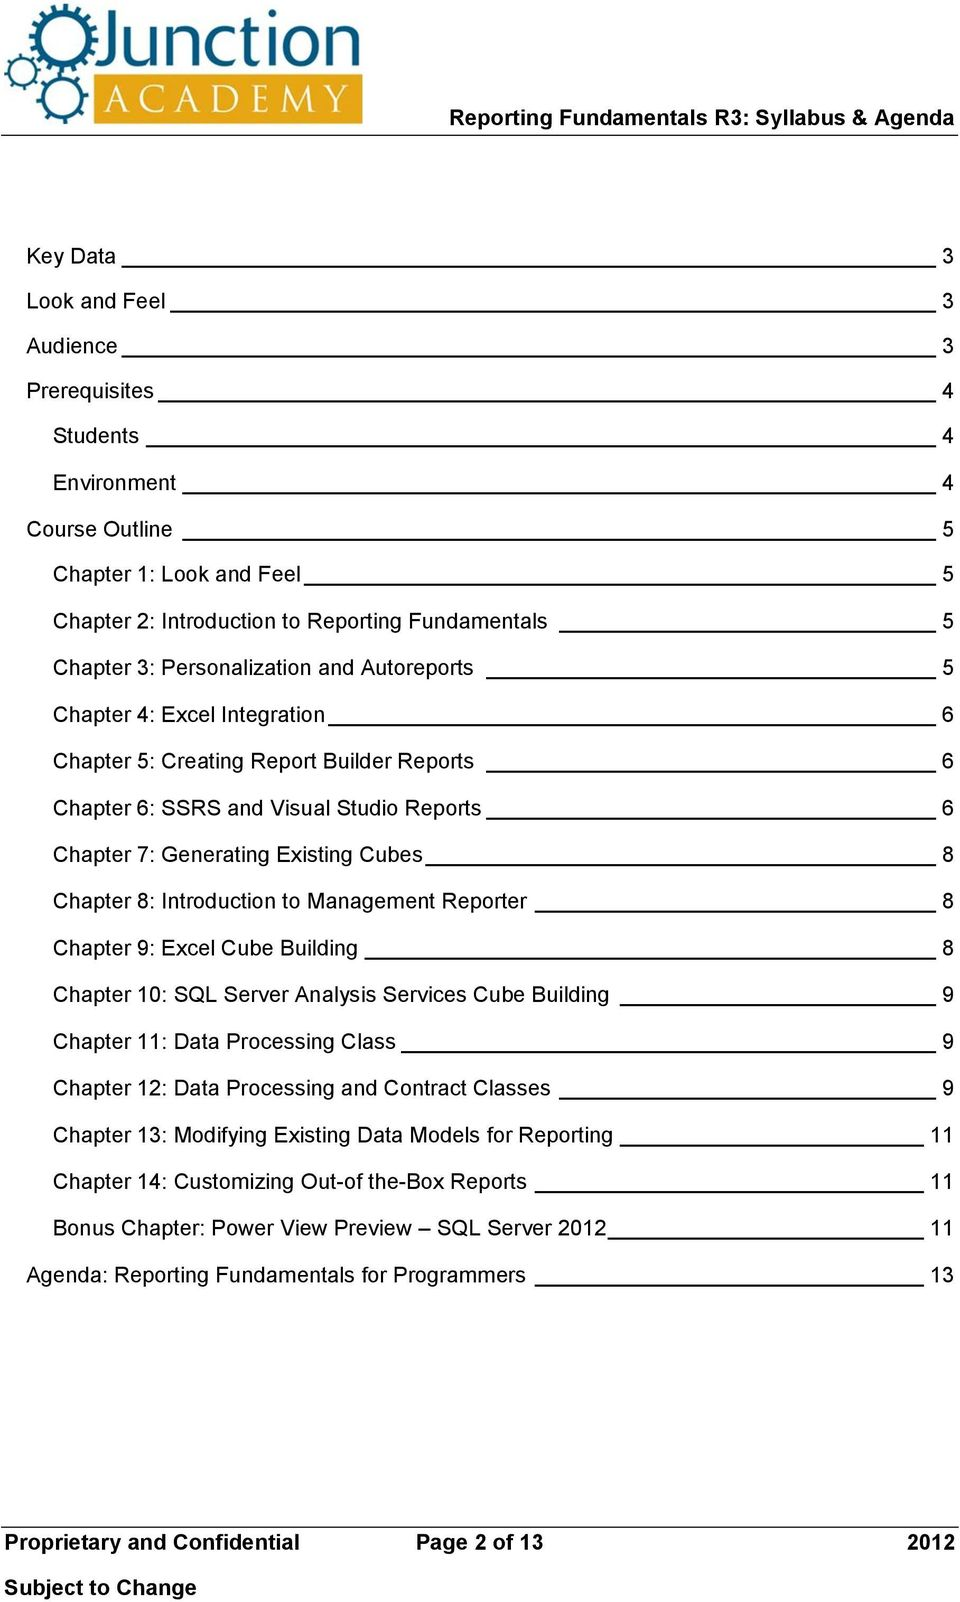 Chapter 8: Introduction to Management Reporter 8 Chapter 9: Excel Cube Building 8 Chapter 10: SQL Server Analysis Services Cube Building 9 Chapter 11: Data Processing Class 9 Chapter 12: Data